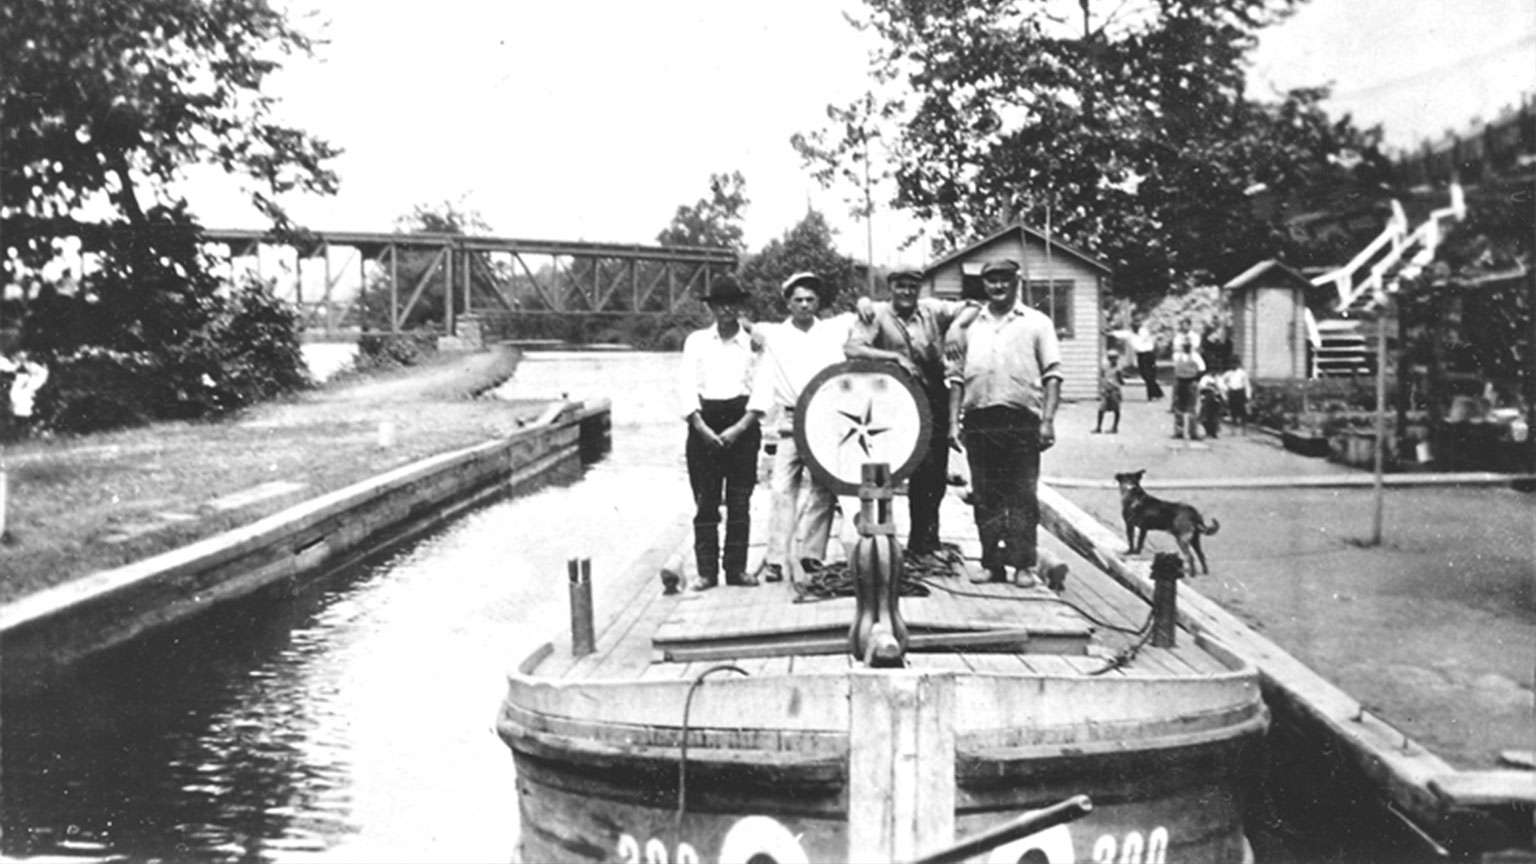 This picture really shows the life that went on at the locks along the canal.  It also highlights a nicely painted dasher for a nighthawker that the men posed around for a photo.